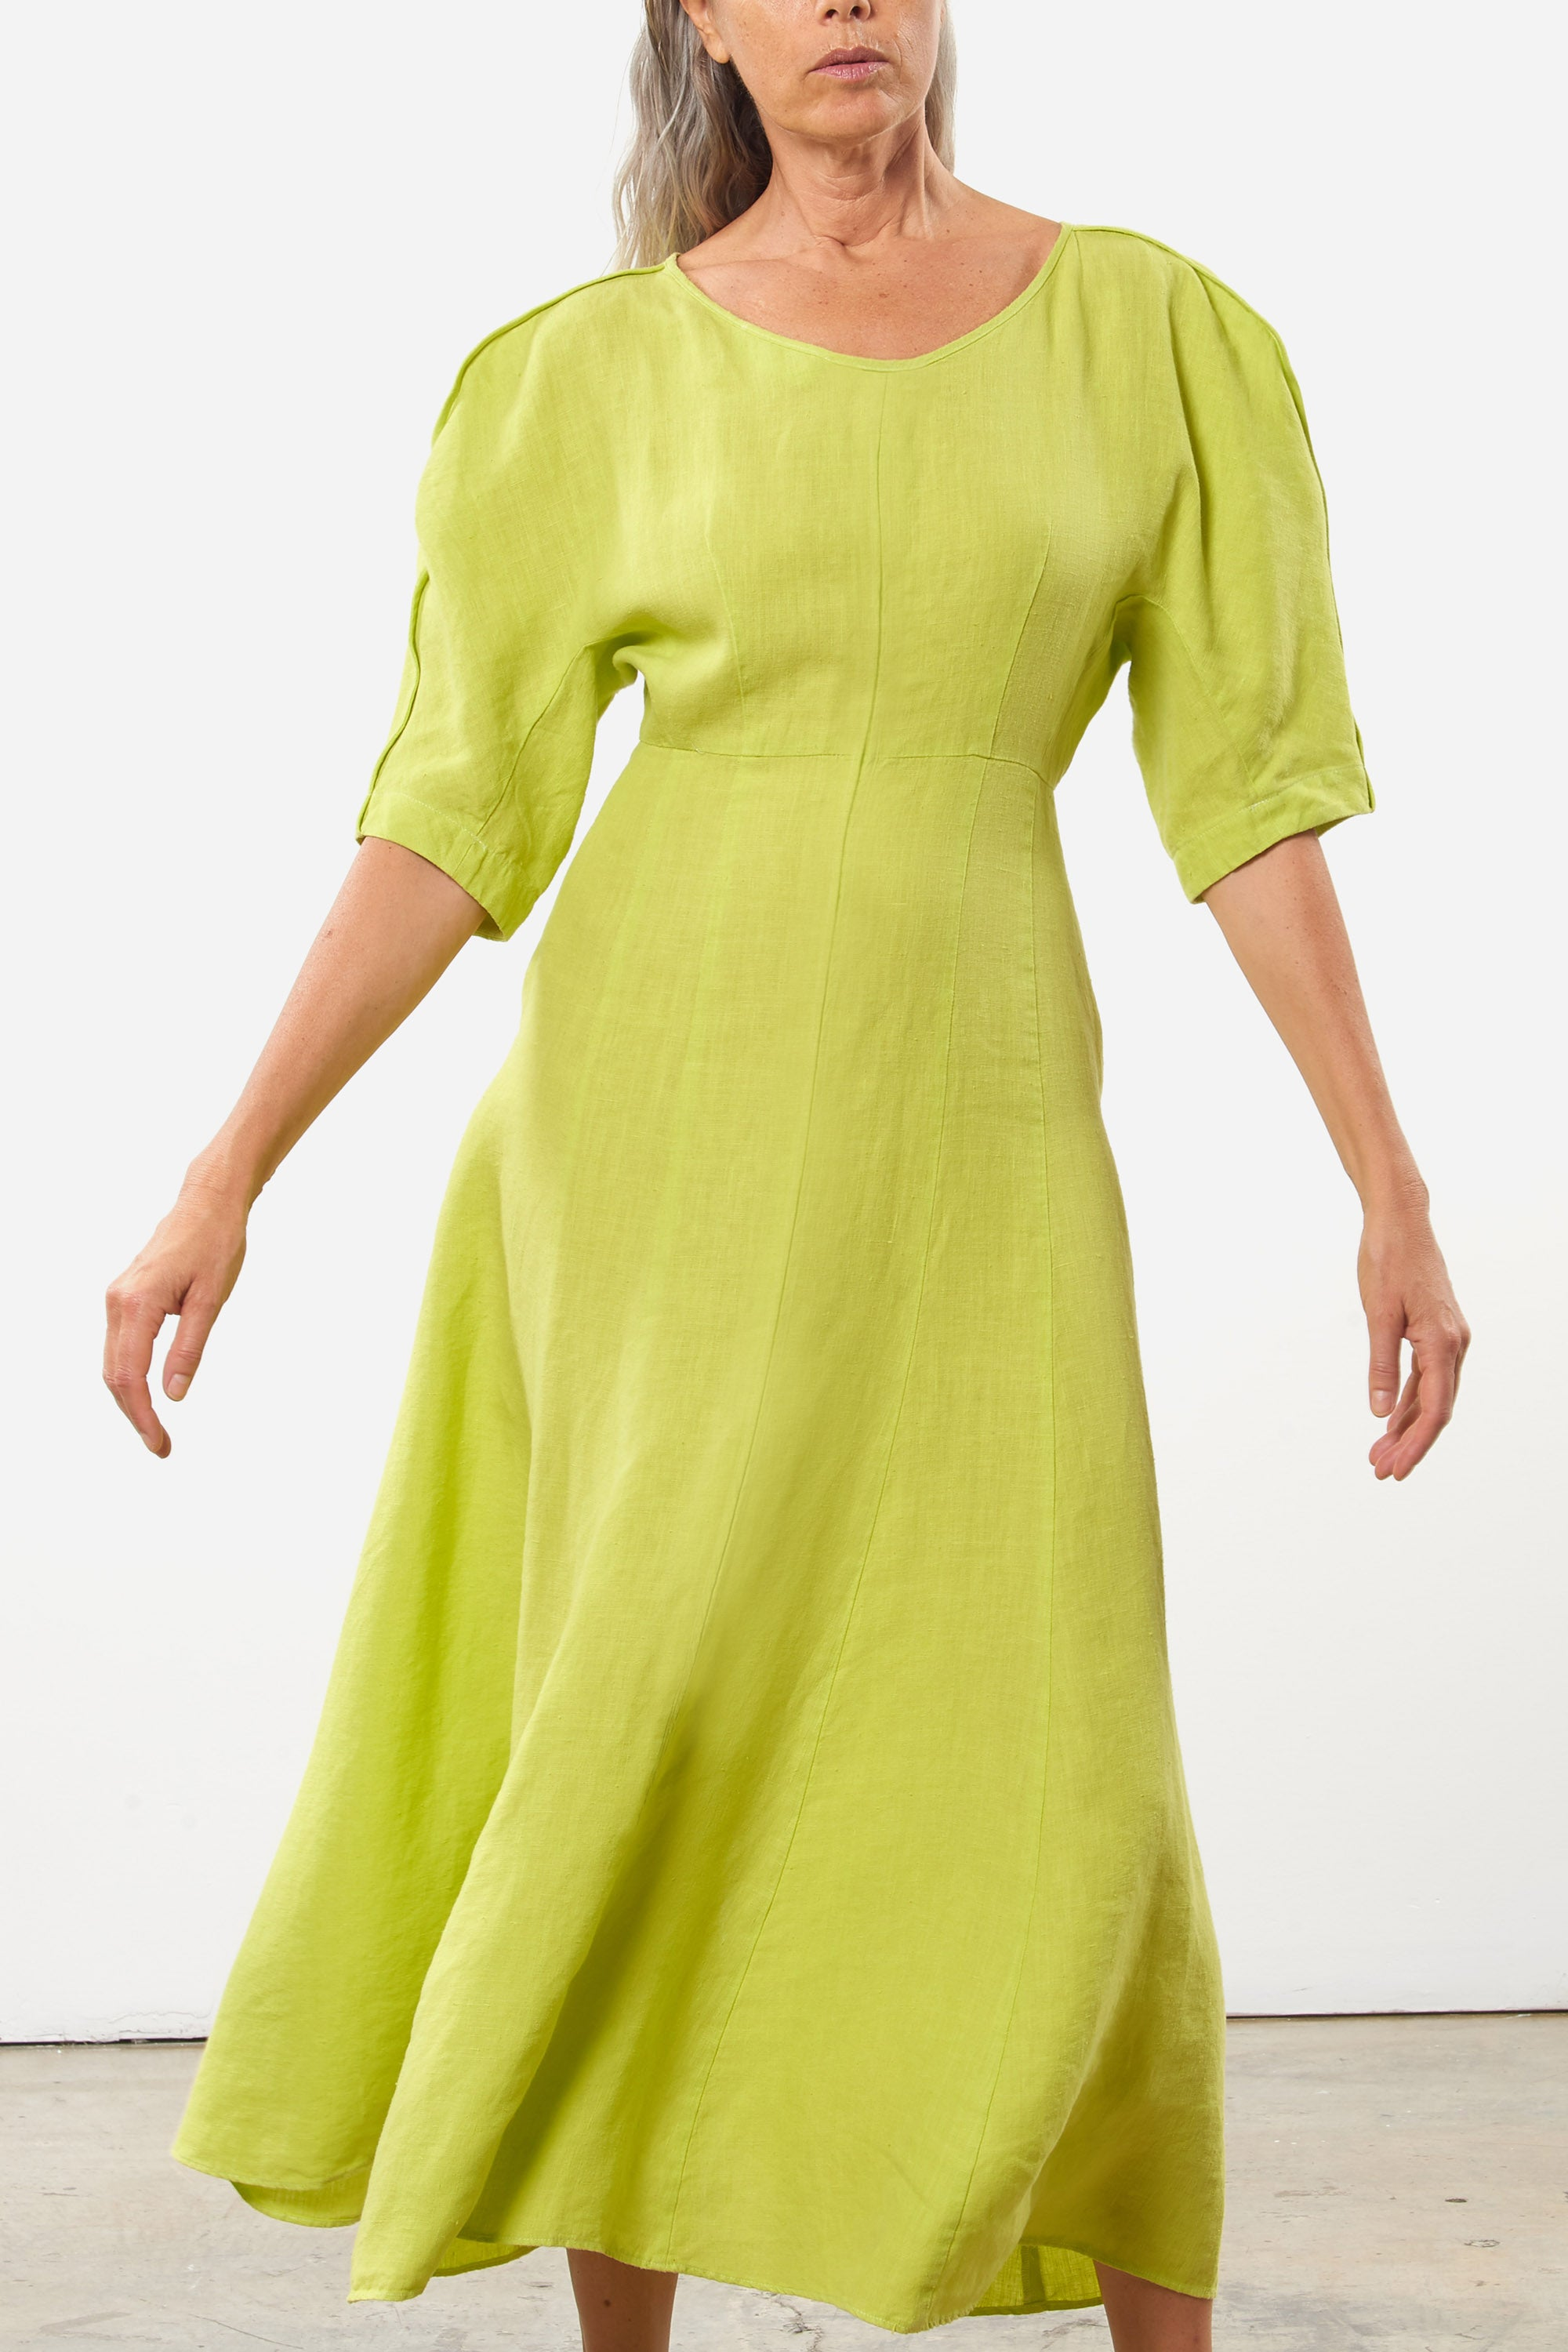 Mara Hoffman Green Sicily Dress in Hemp (front movement)